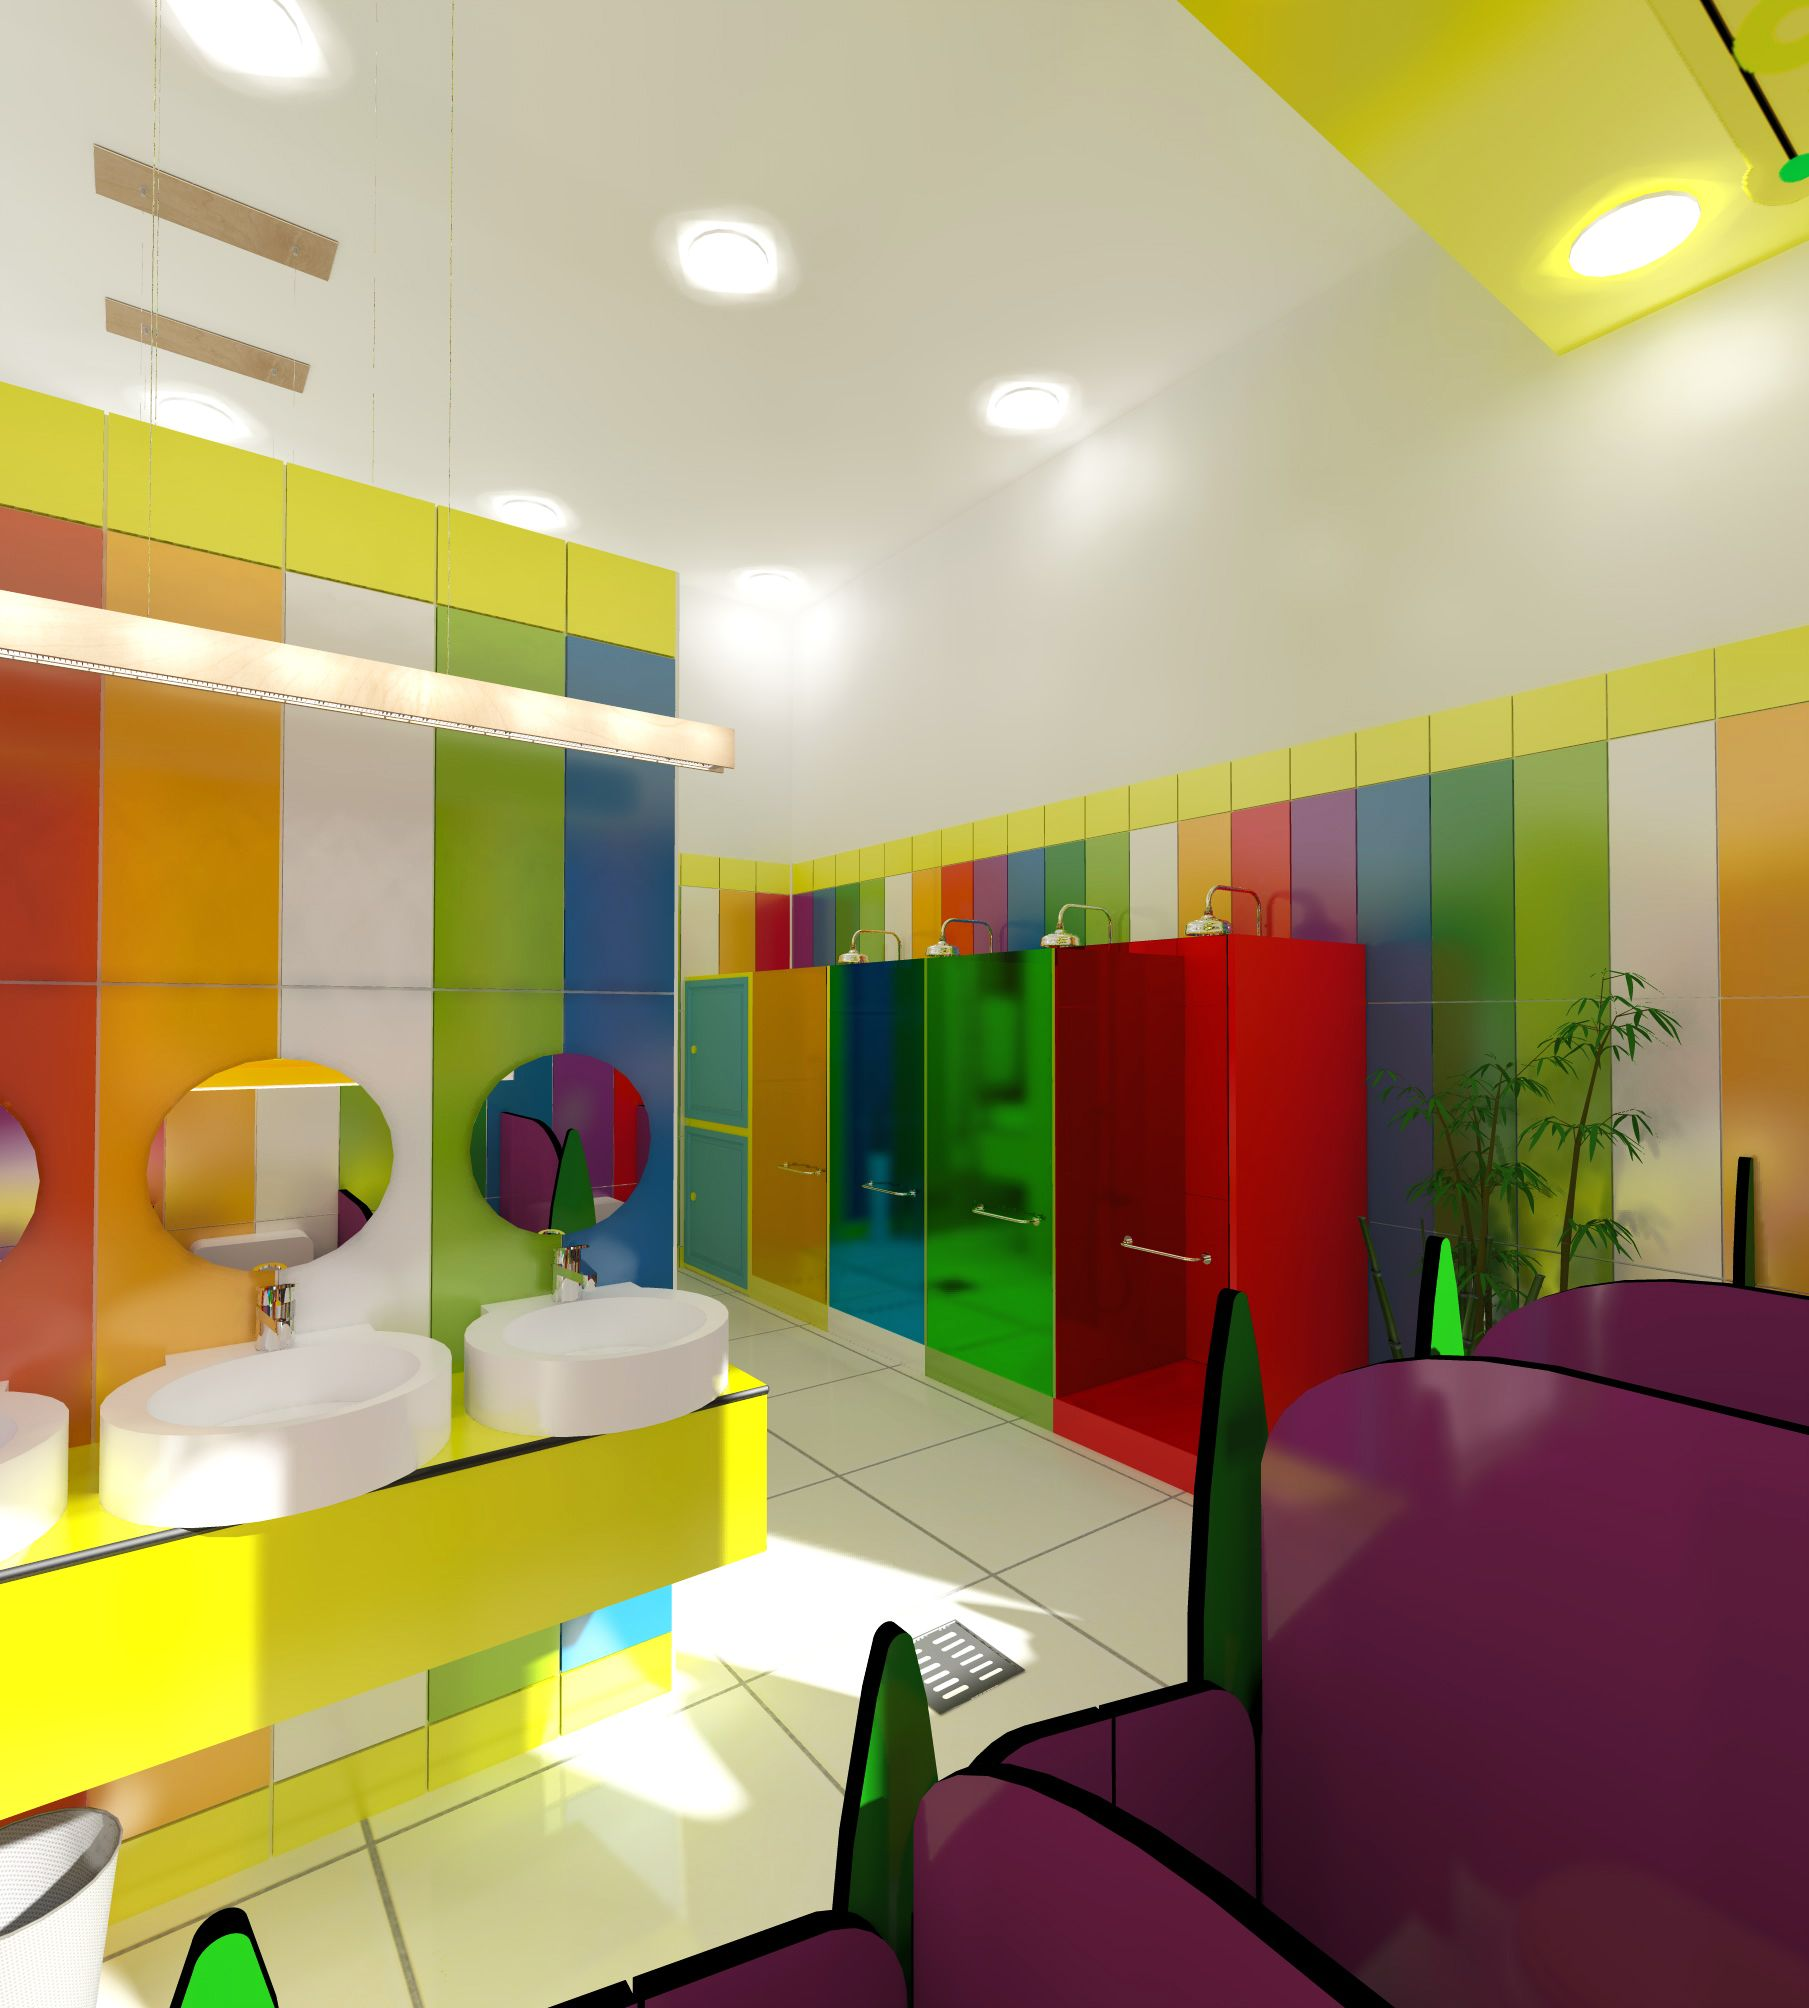 Kindergarten Bathroom Design - Colorful Spaces - Mandala Floor -